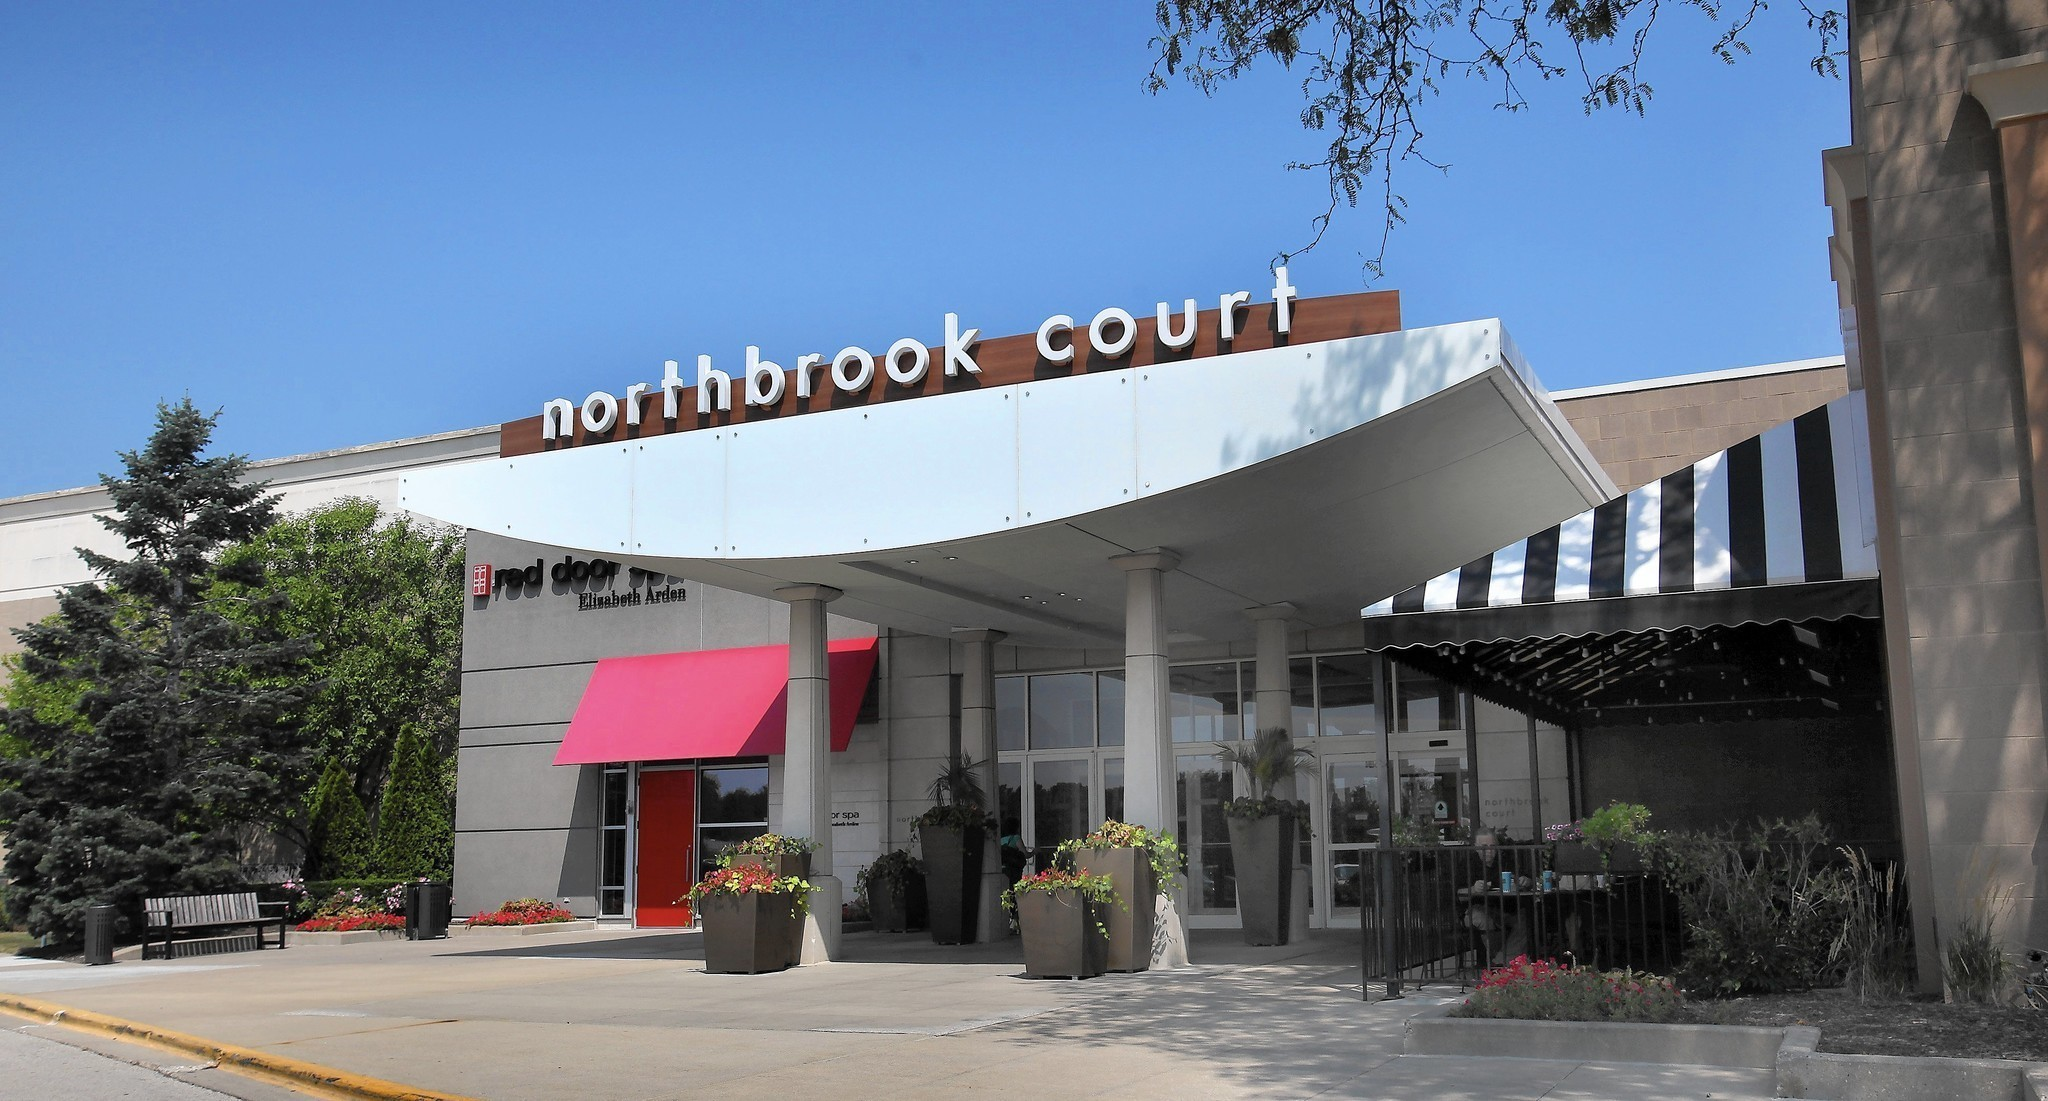 Northbrook Court is located in Northbrook, Illinois and offers 92 stores - Scroll down for Northbrook Court shopping information: store list (directory), locations, mall hours, contact and address.3/5(1).